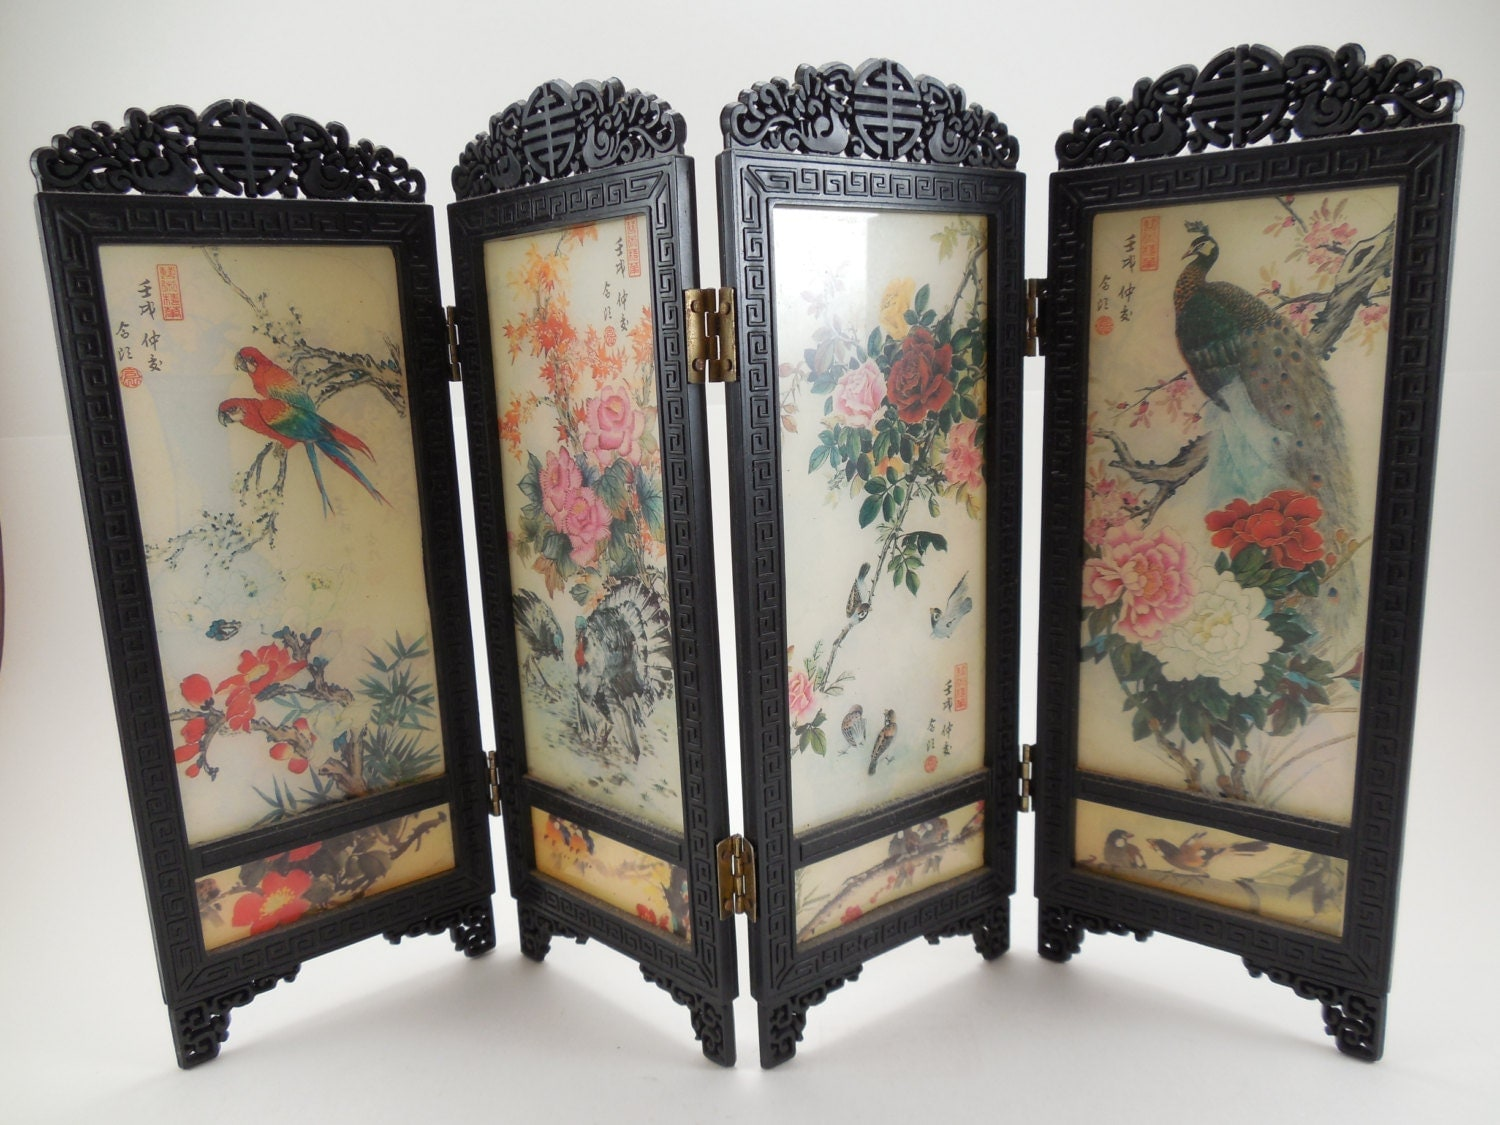 r serv aux japonais mini paravent paons fleurs oiseaux. Black Bedroom Furniture Sets. Home Design Ideas